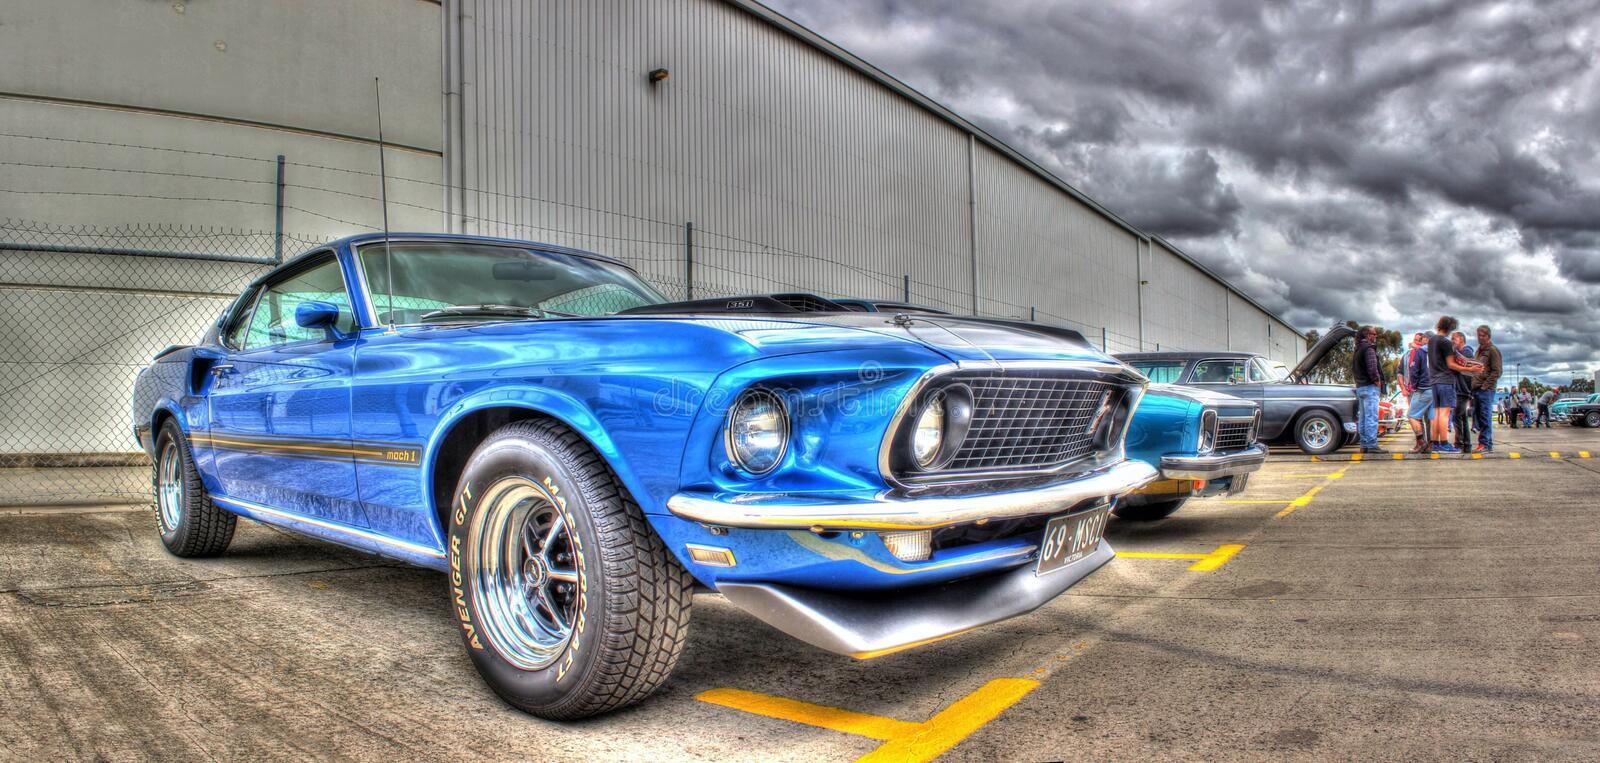 1960s American Ford Mustang. 1969 blue Ford Mustang Mach 1 on display at car show in Melbourne, Australia. The Ford Mustang is considered the first of the stock image